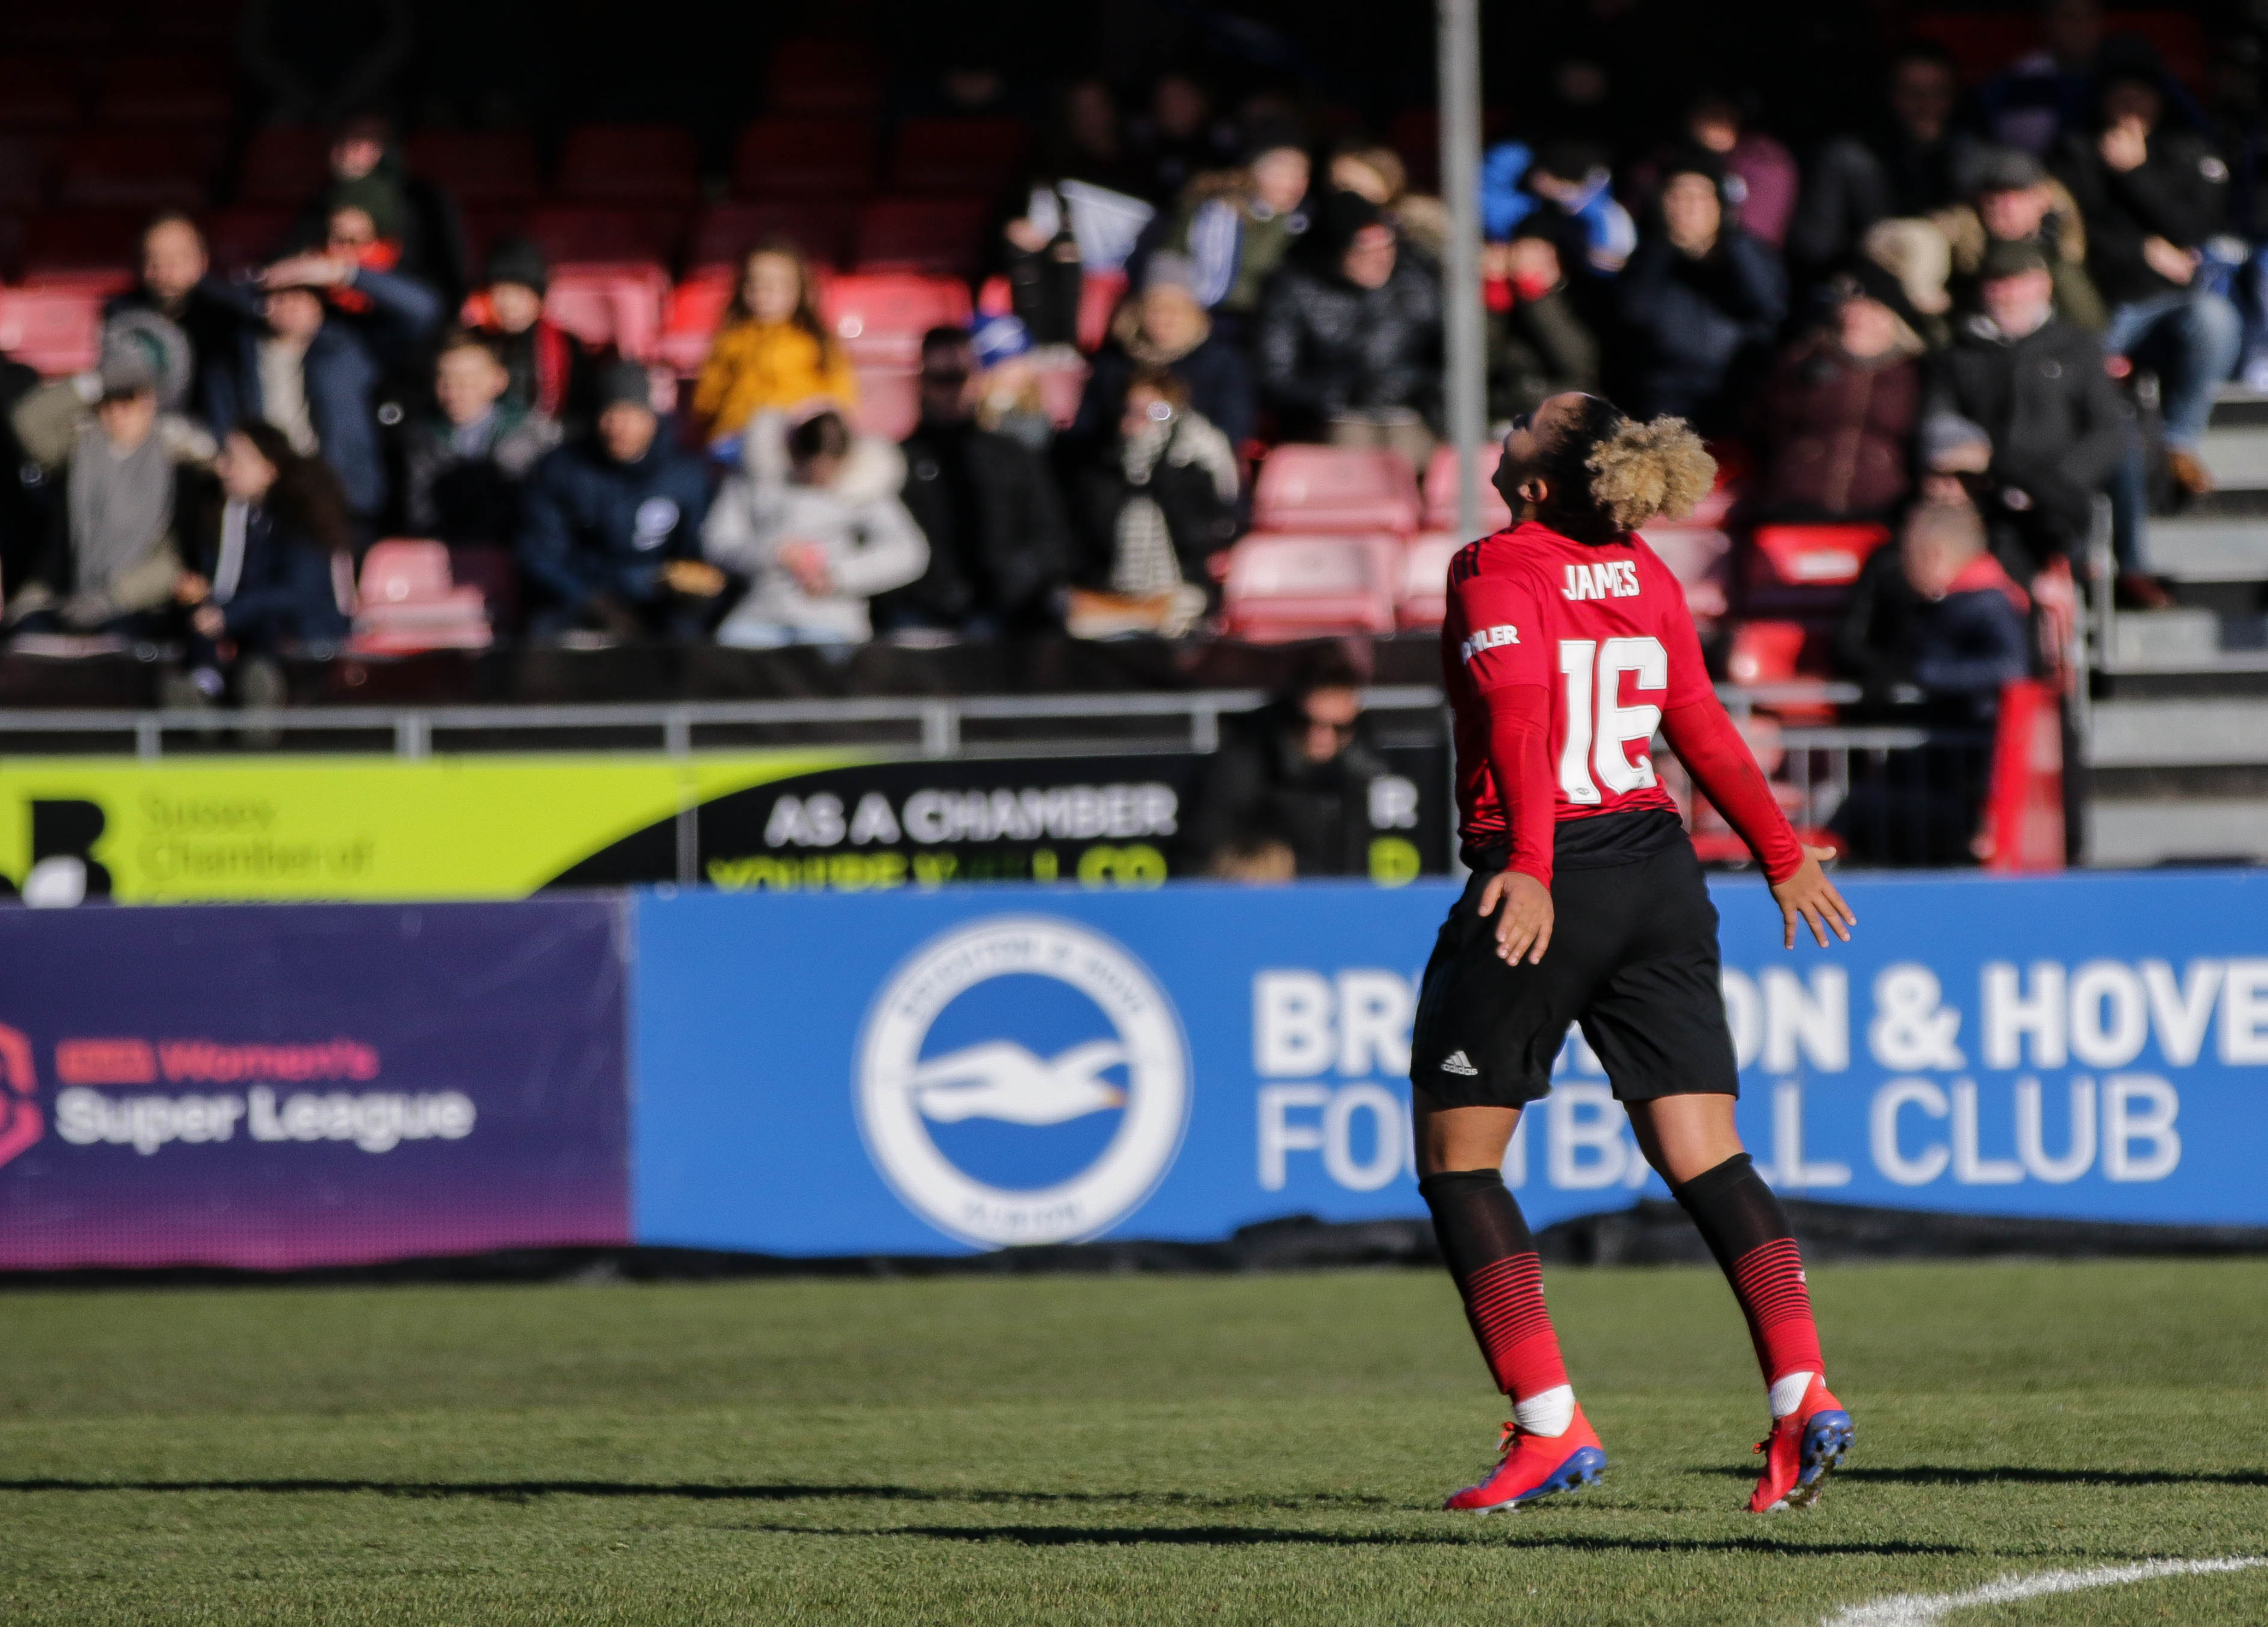 Lauren James in a Manchester United red jersey celebrating in front of a crowd after a goal.